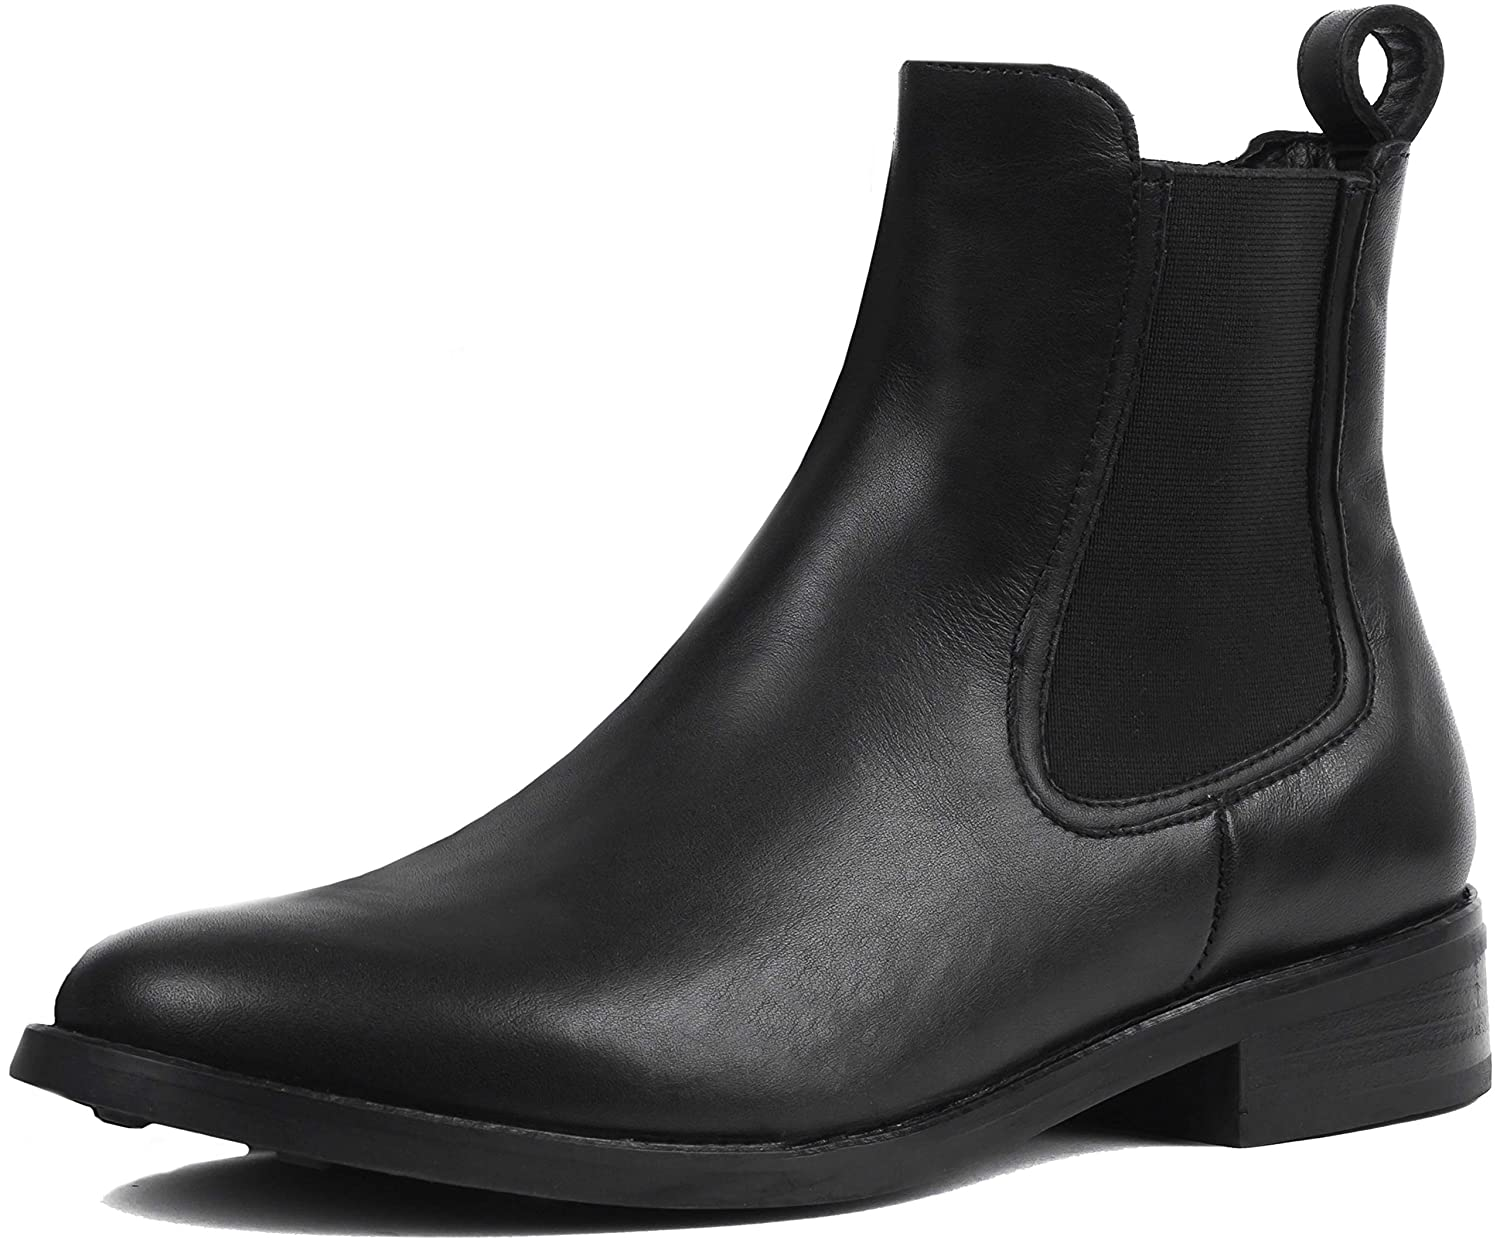 ee11bdec2616f Thursday Boot Company Duchess Women s Chelsea Boot